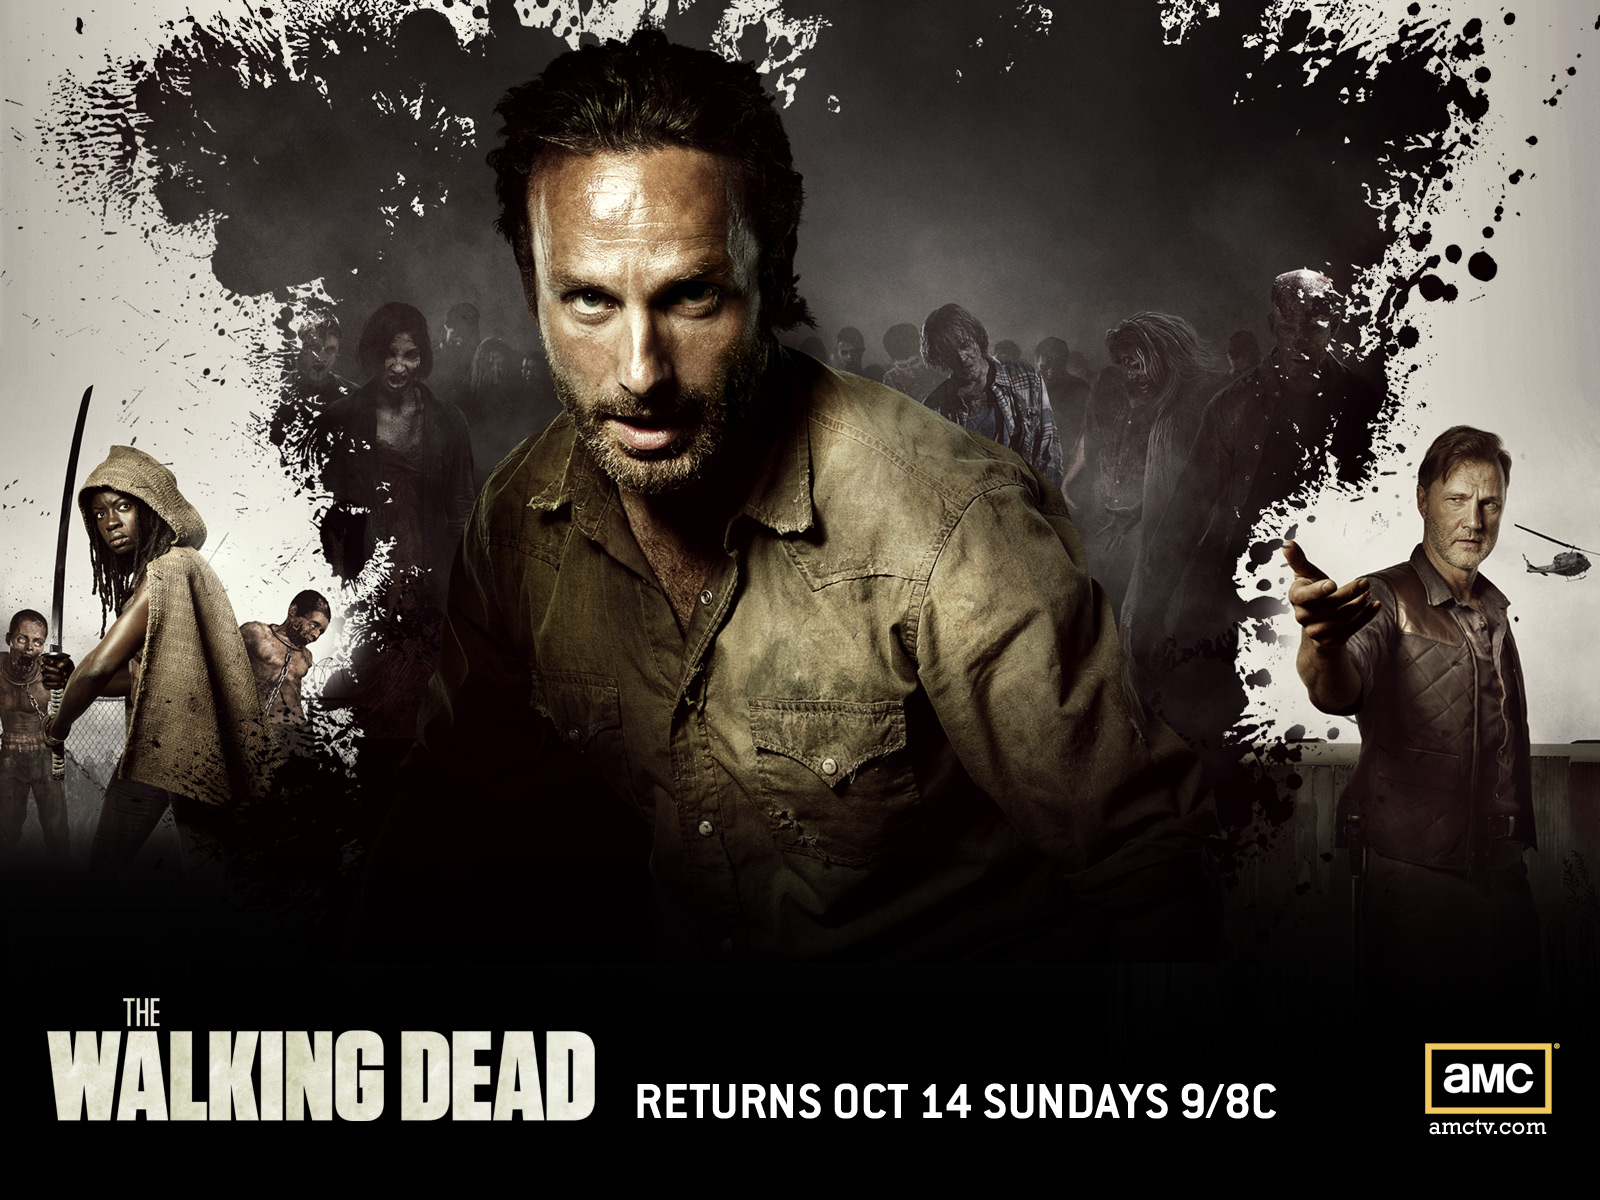 The Walking Dead - The Walking Dead Wallpaper (32297717) - Fanpop